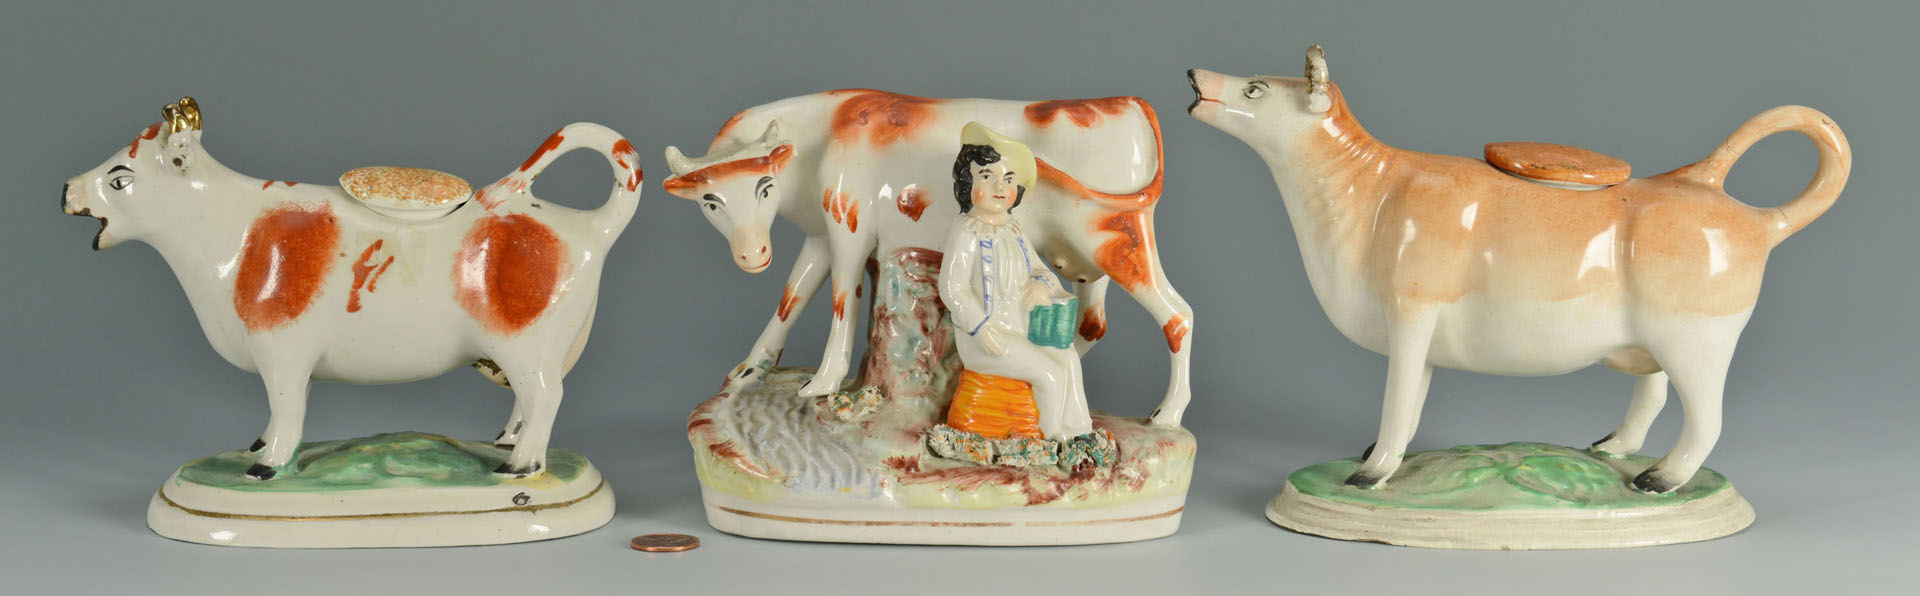 Lot 438: 3 Staffordshire Pottery Cows